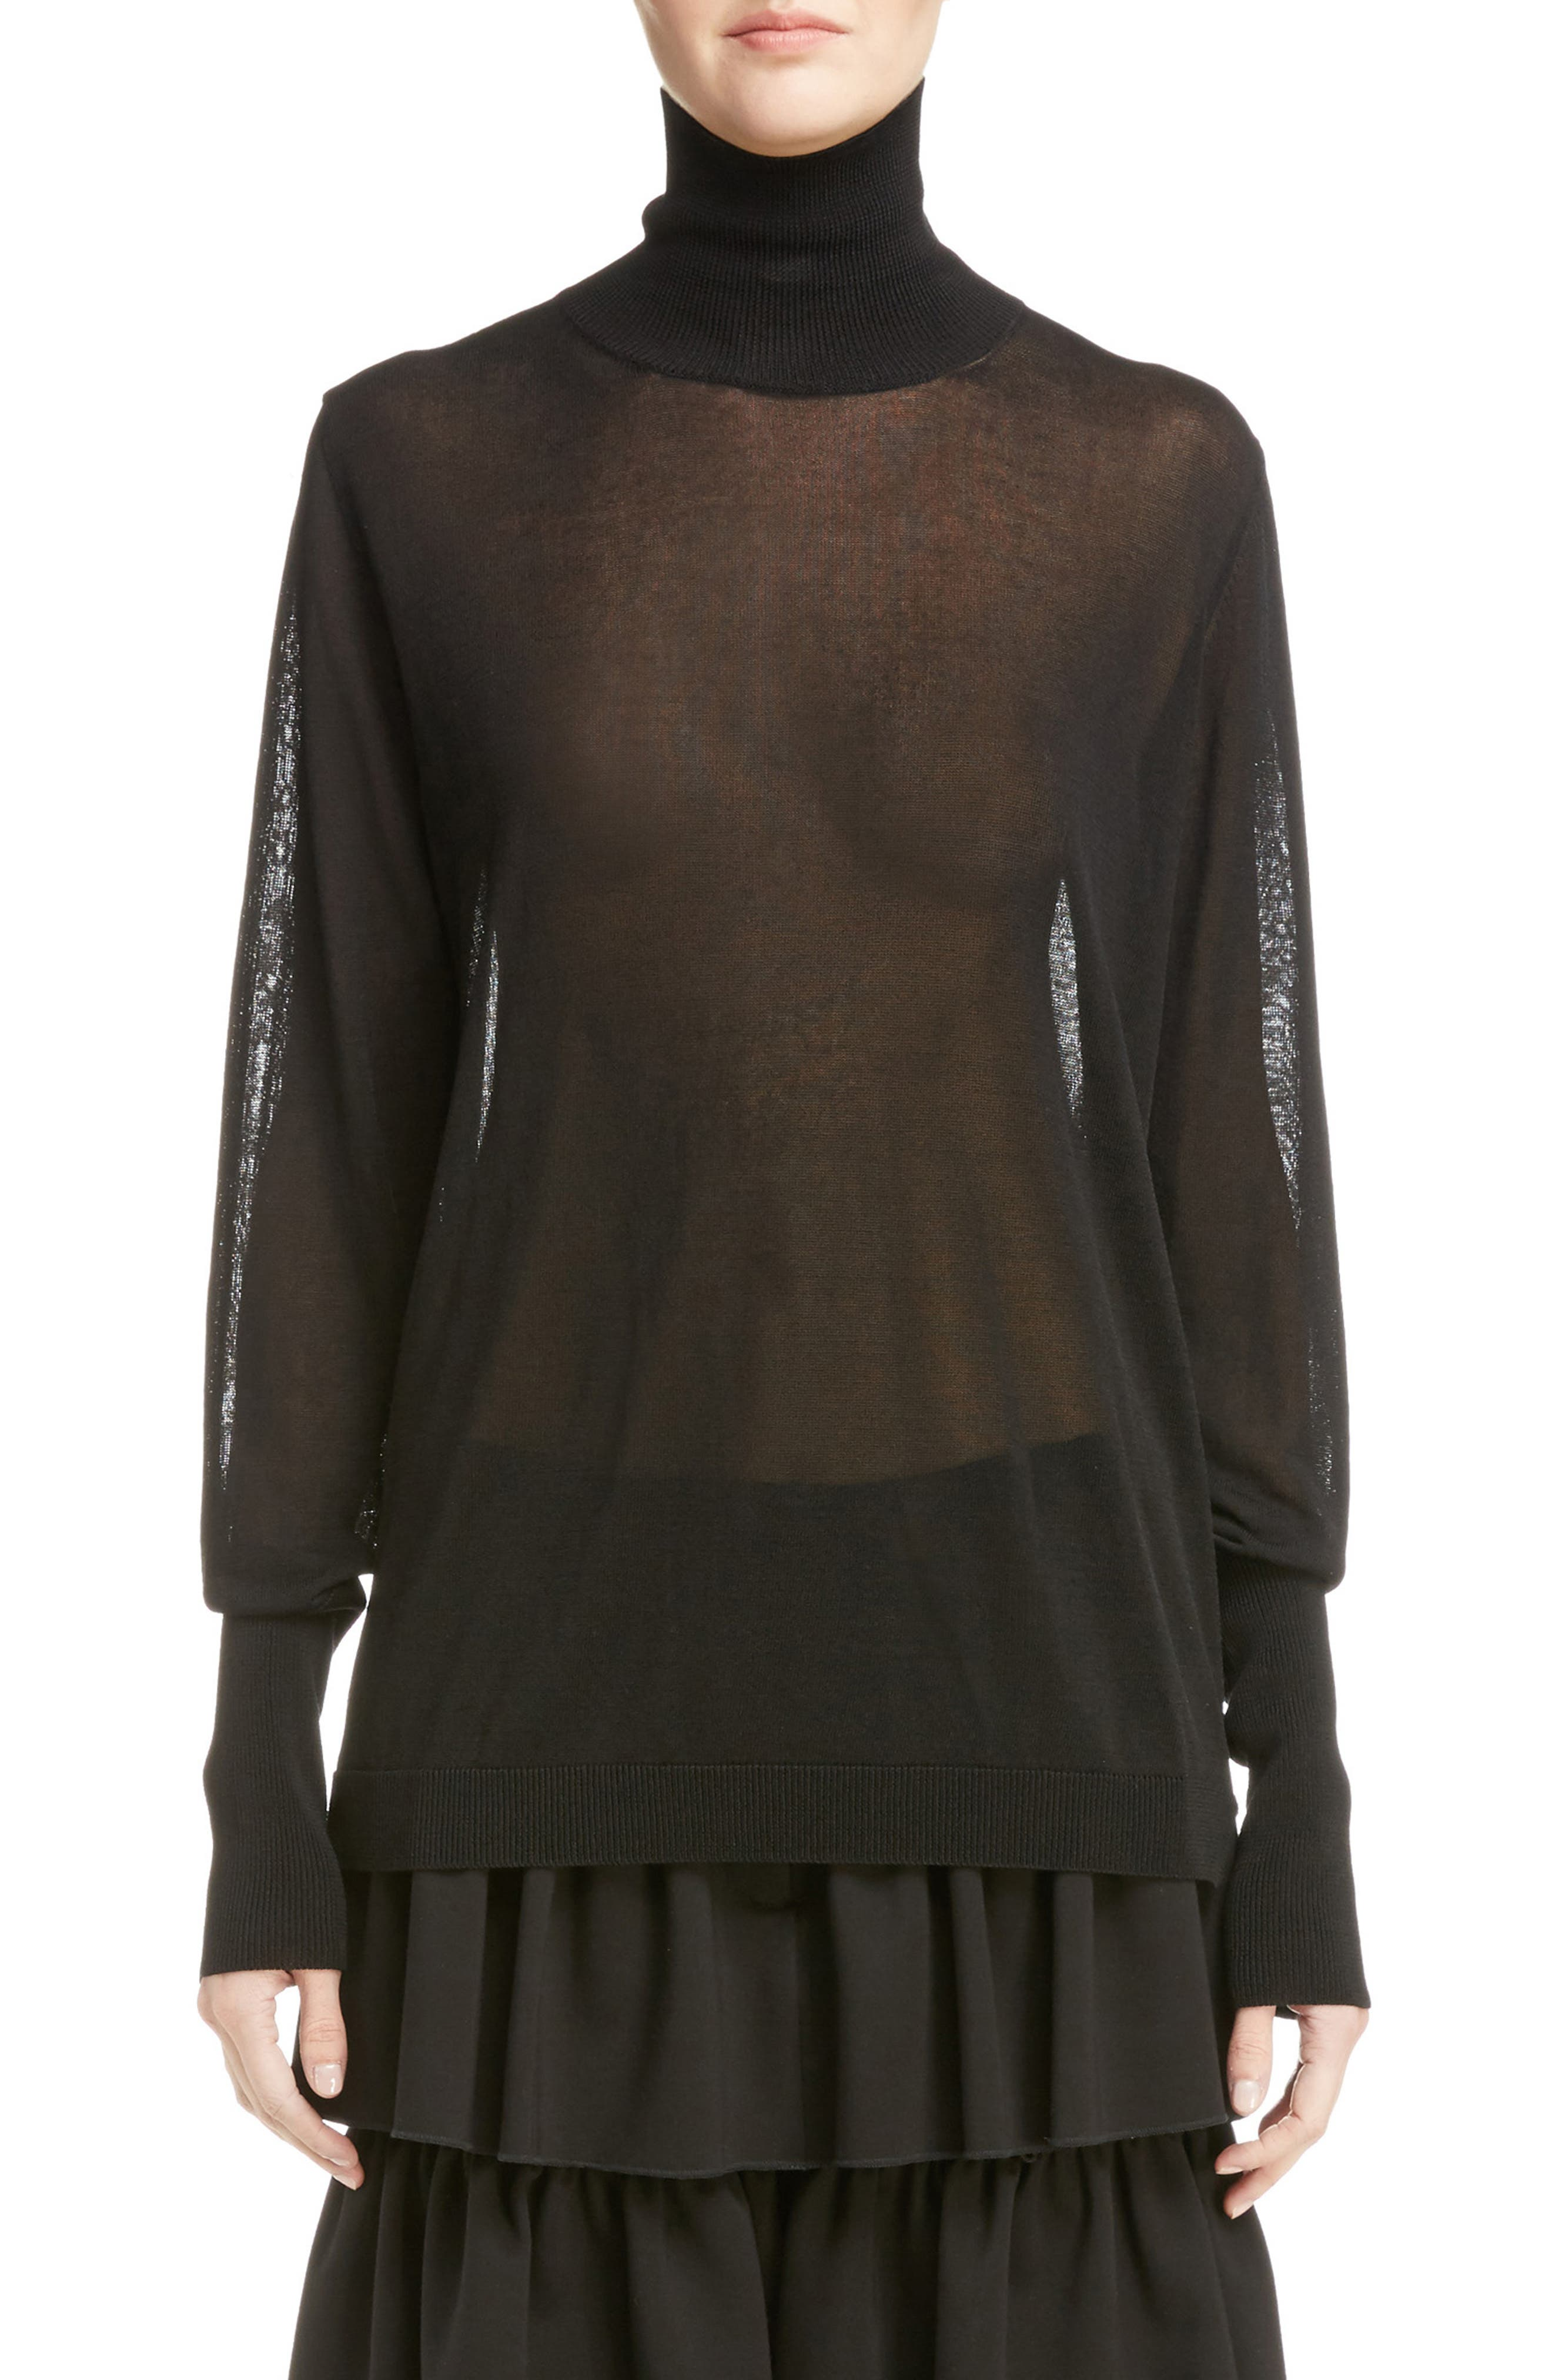 Simone Rocha Sheer Mock Neck Sweater